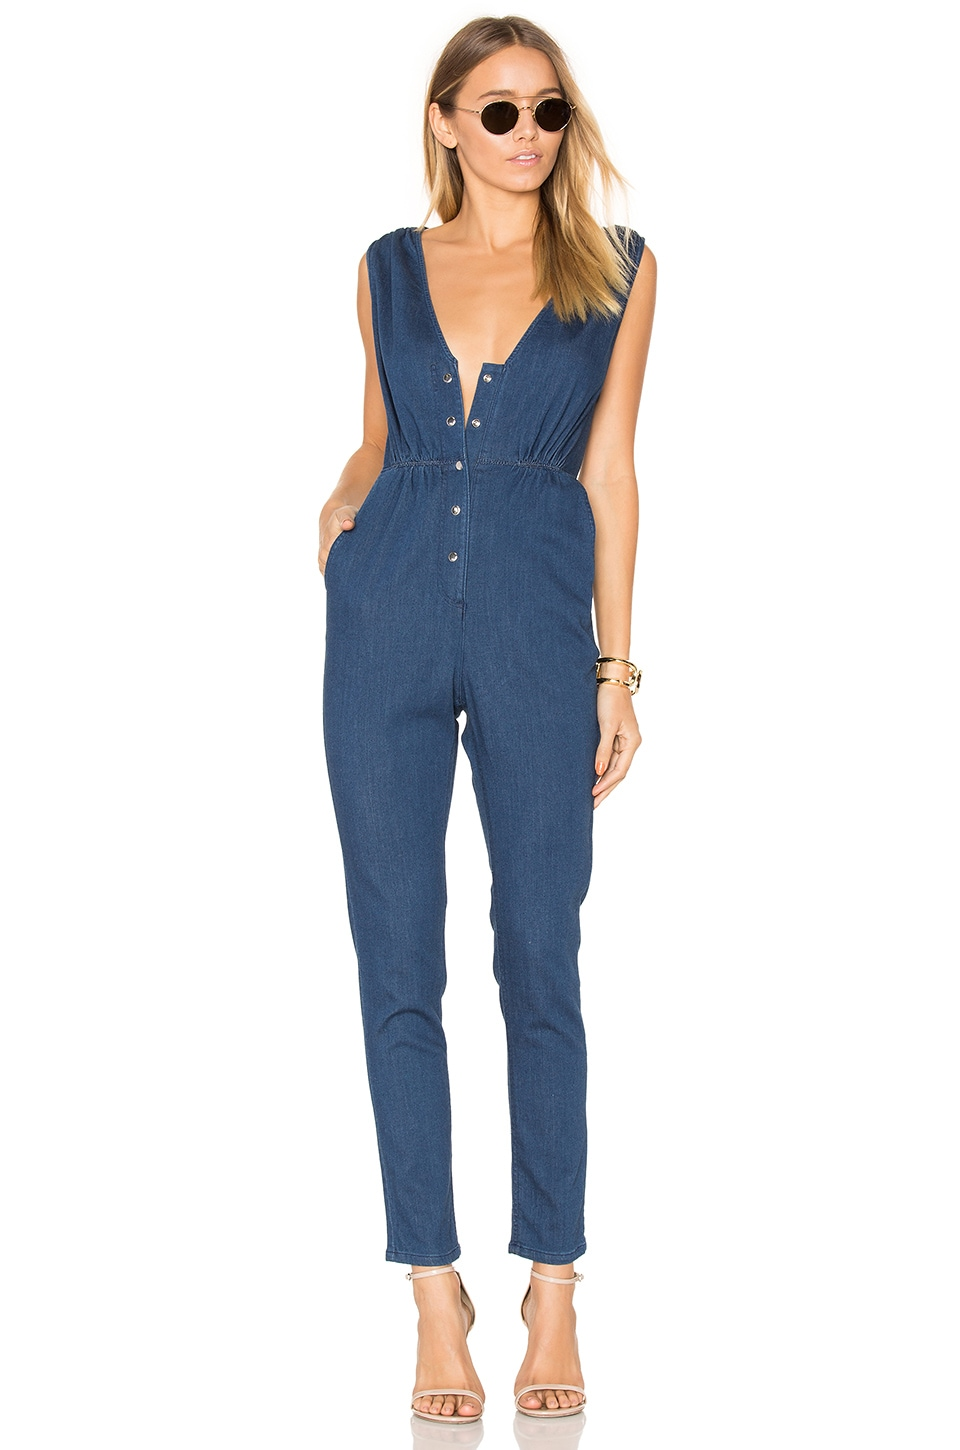 Rachel Comey Diversion Jumpsuit in Indigo